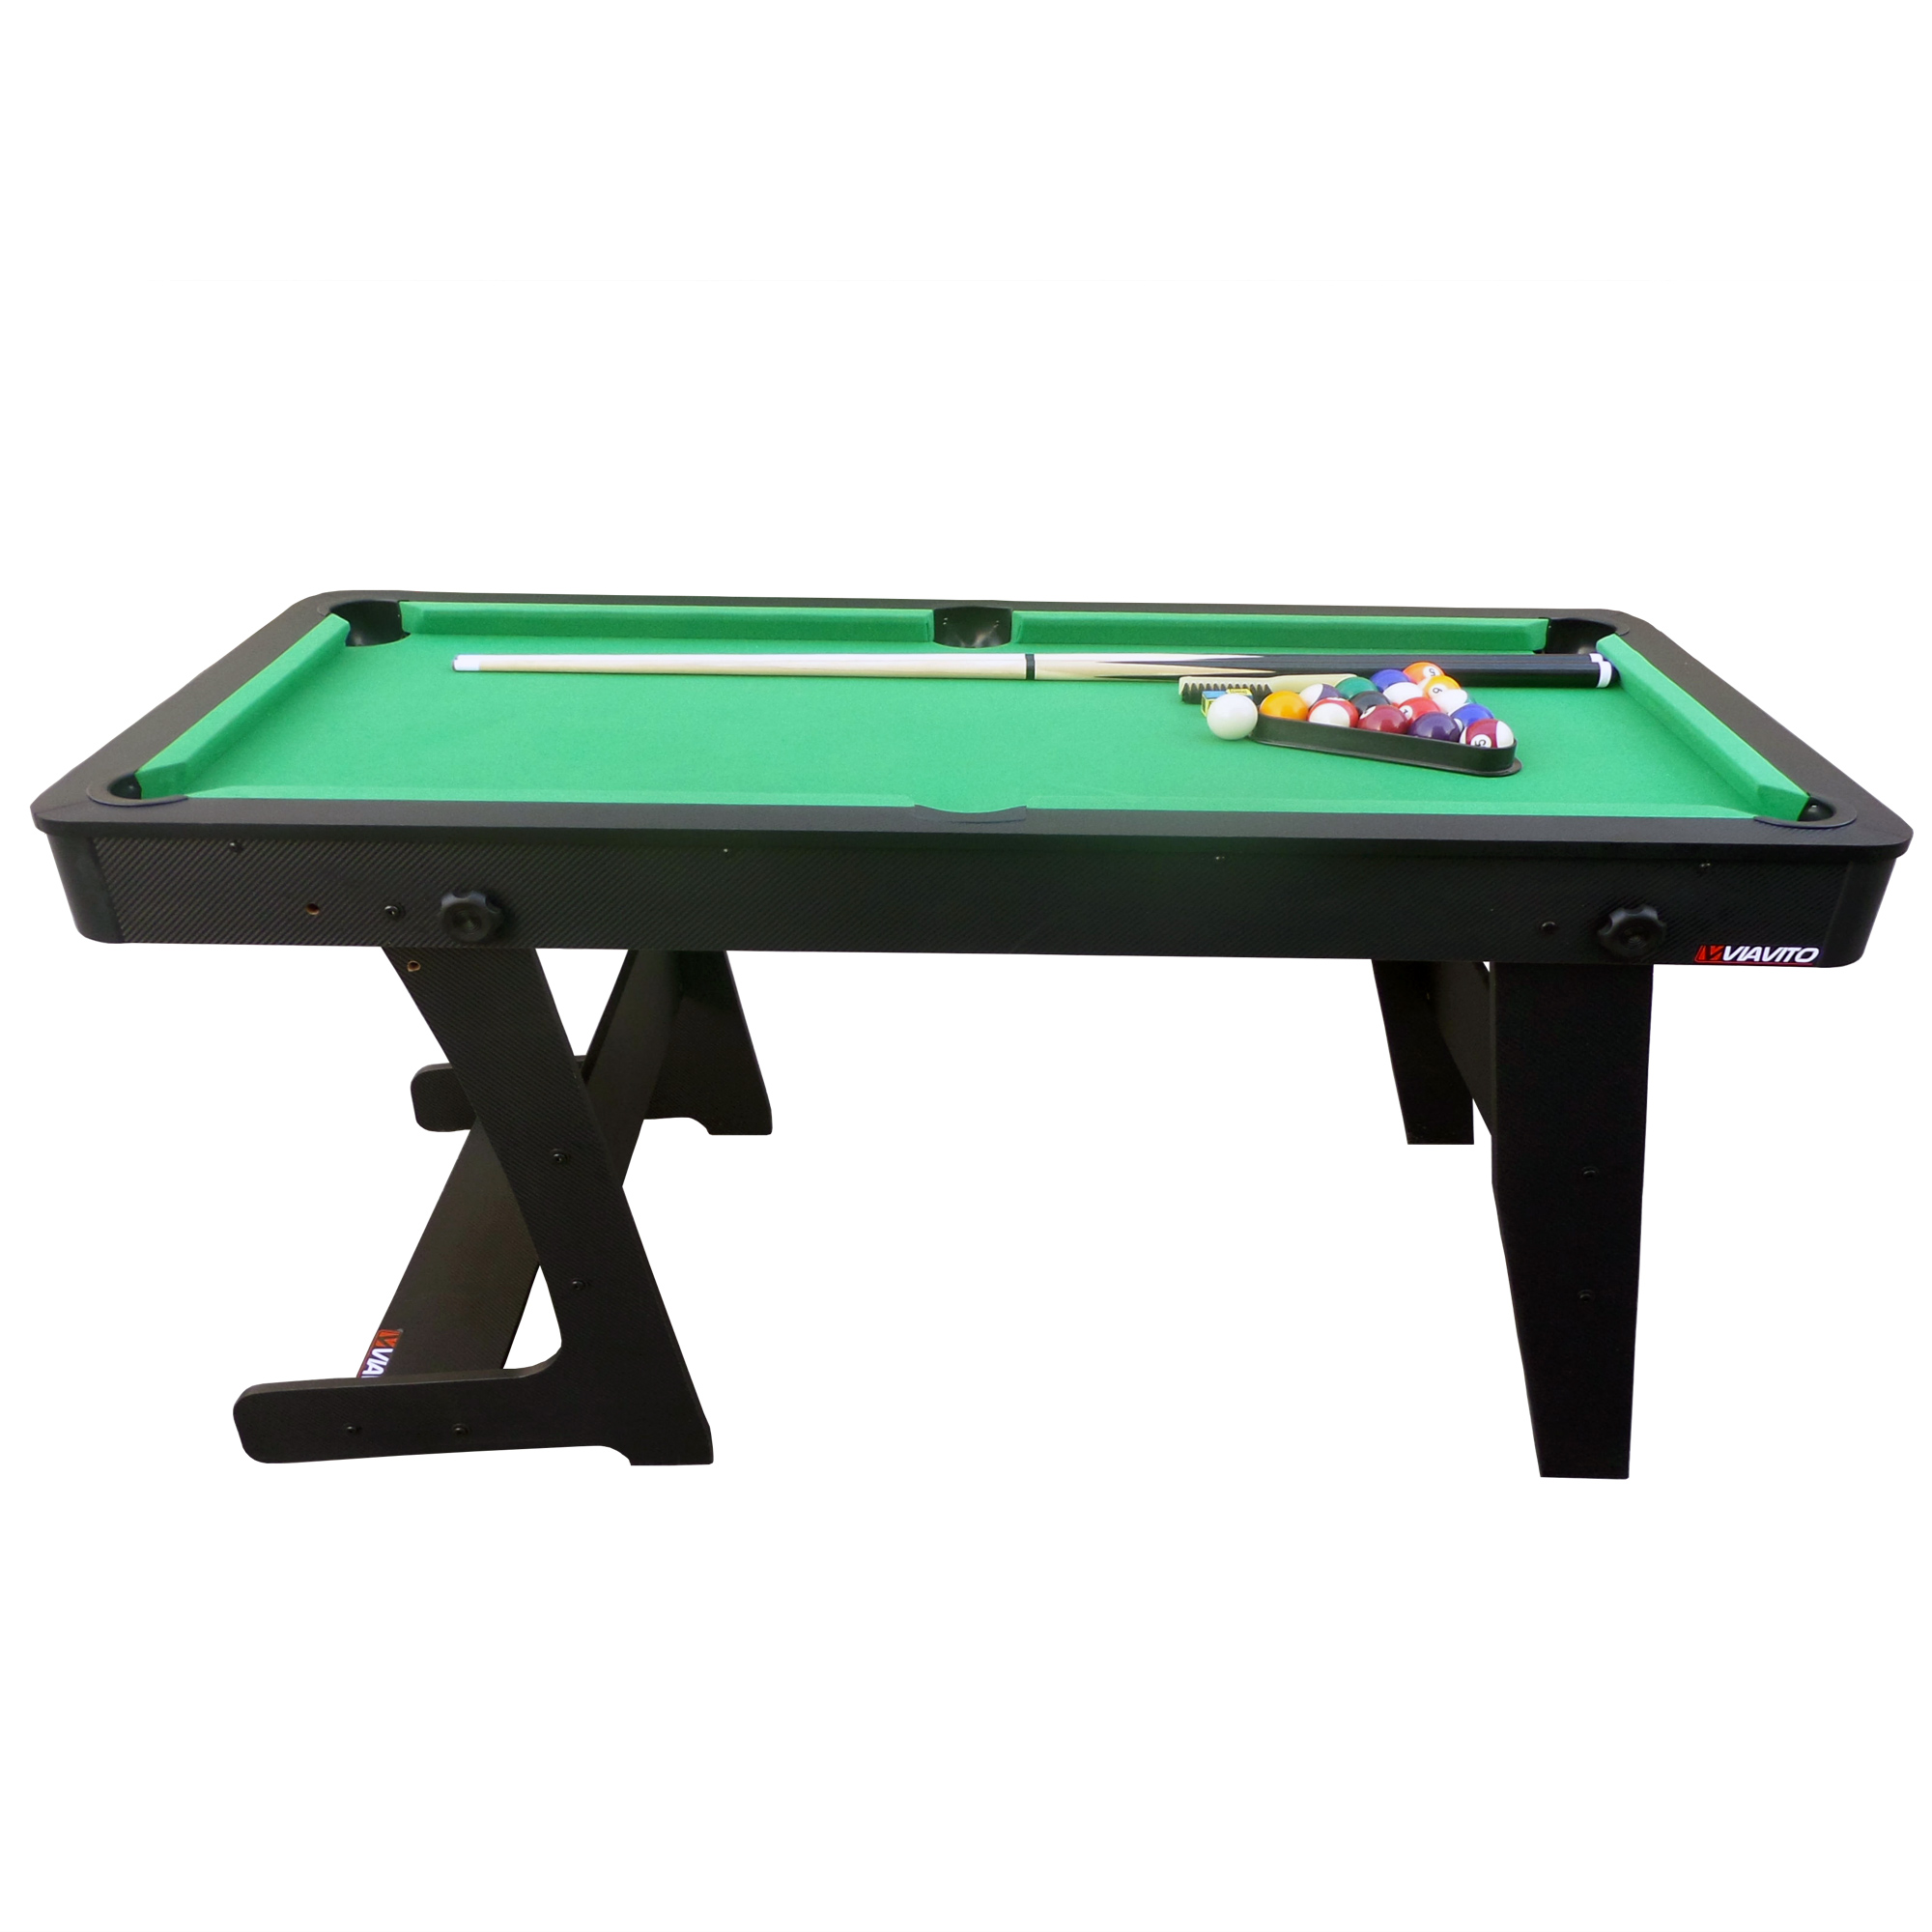 table games. table games